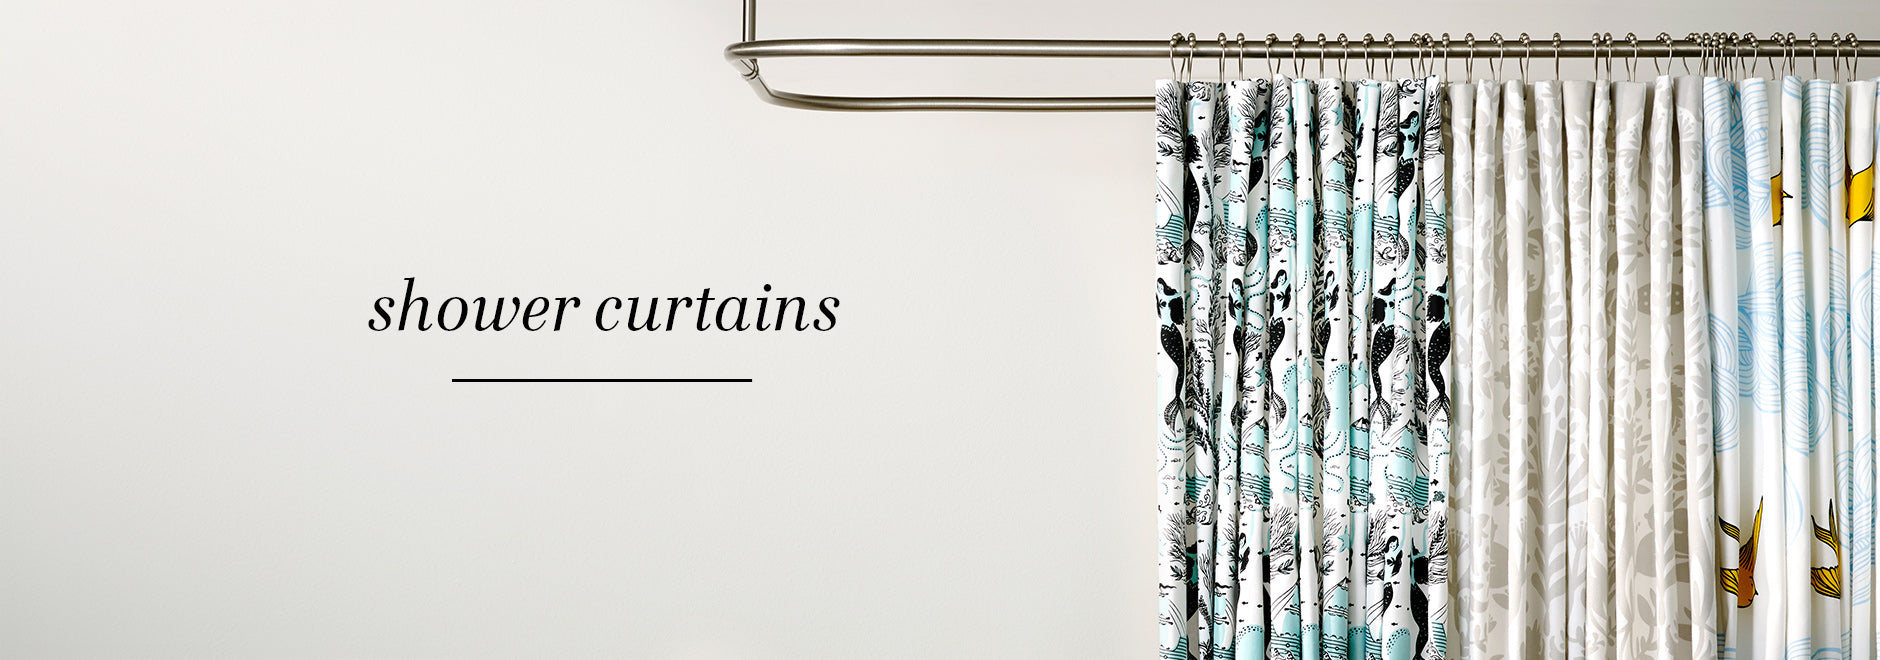 SS19 Shower Curtains